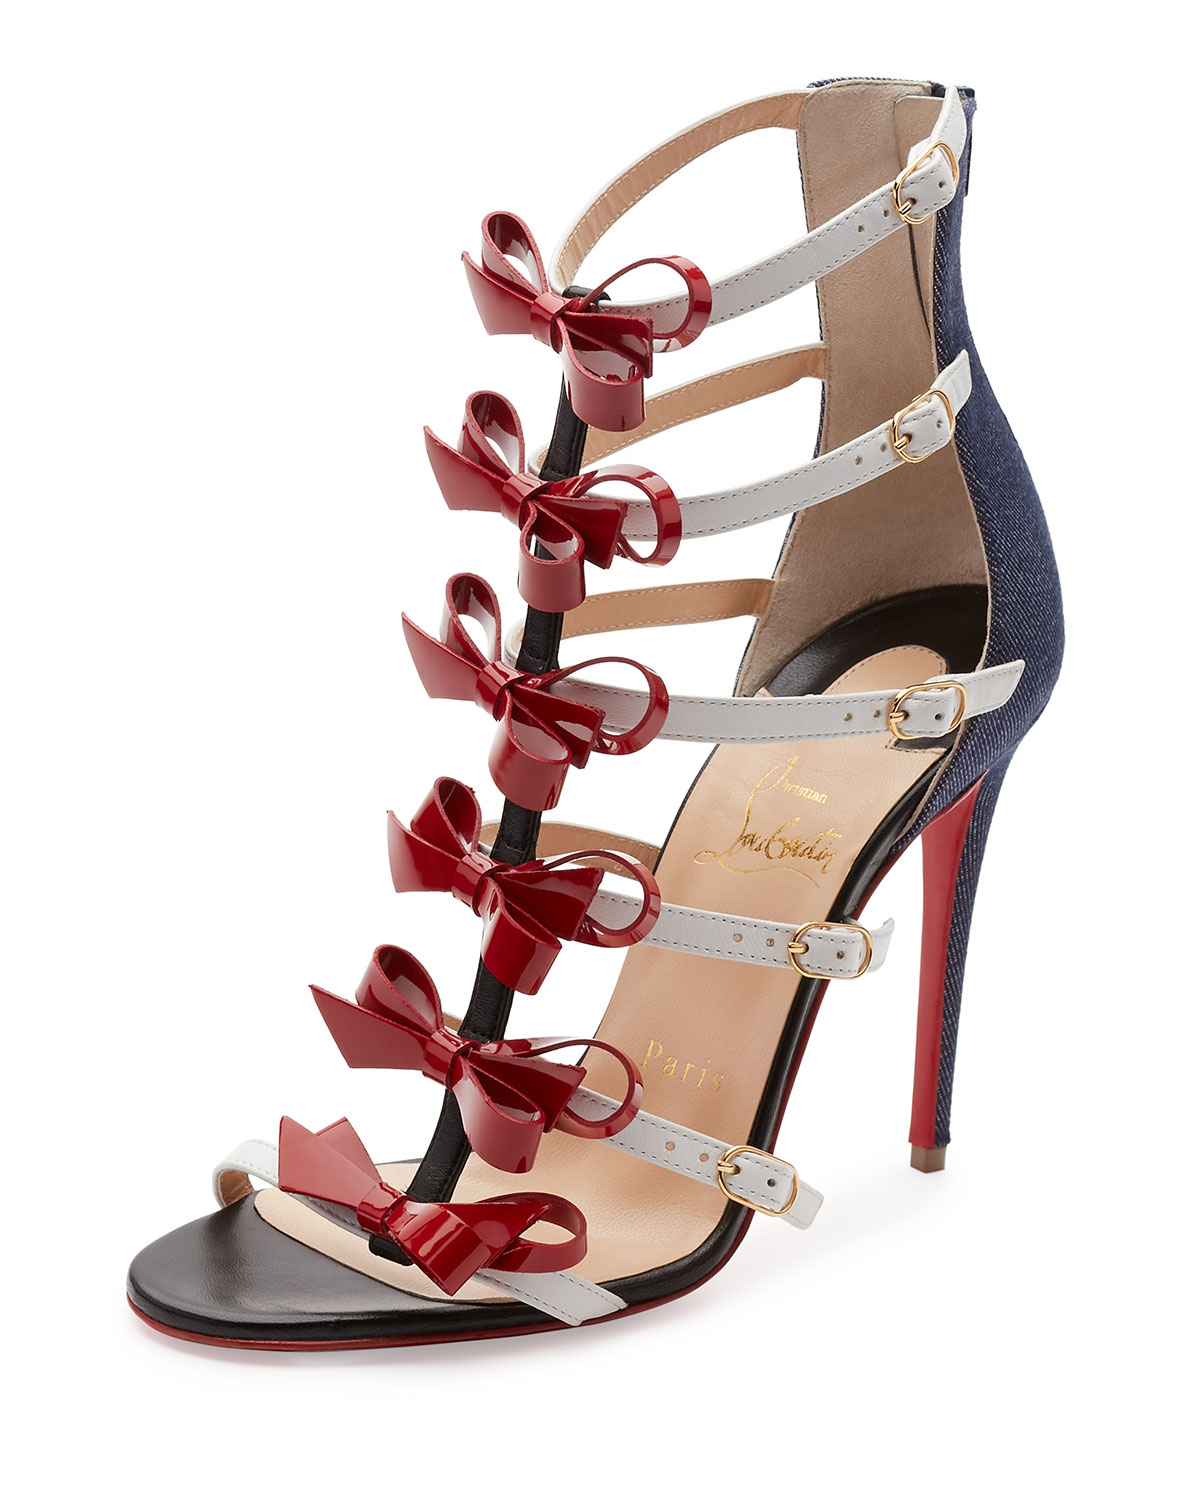 Christian Louboutin Girlystrappi Bow 100mm Red Sole Sandal ... 5fe1a7eced30